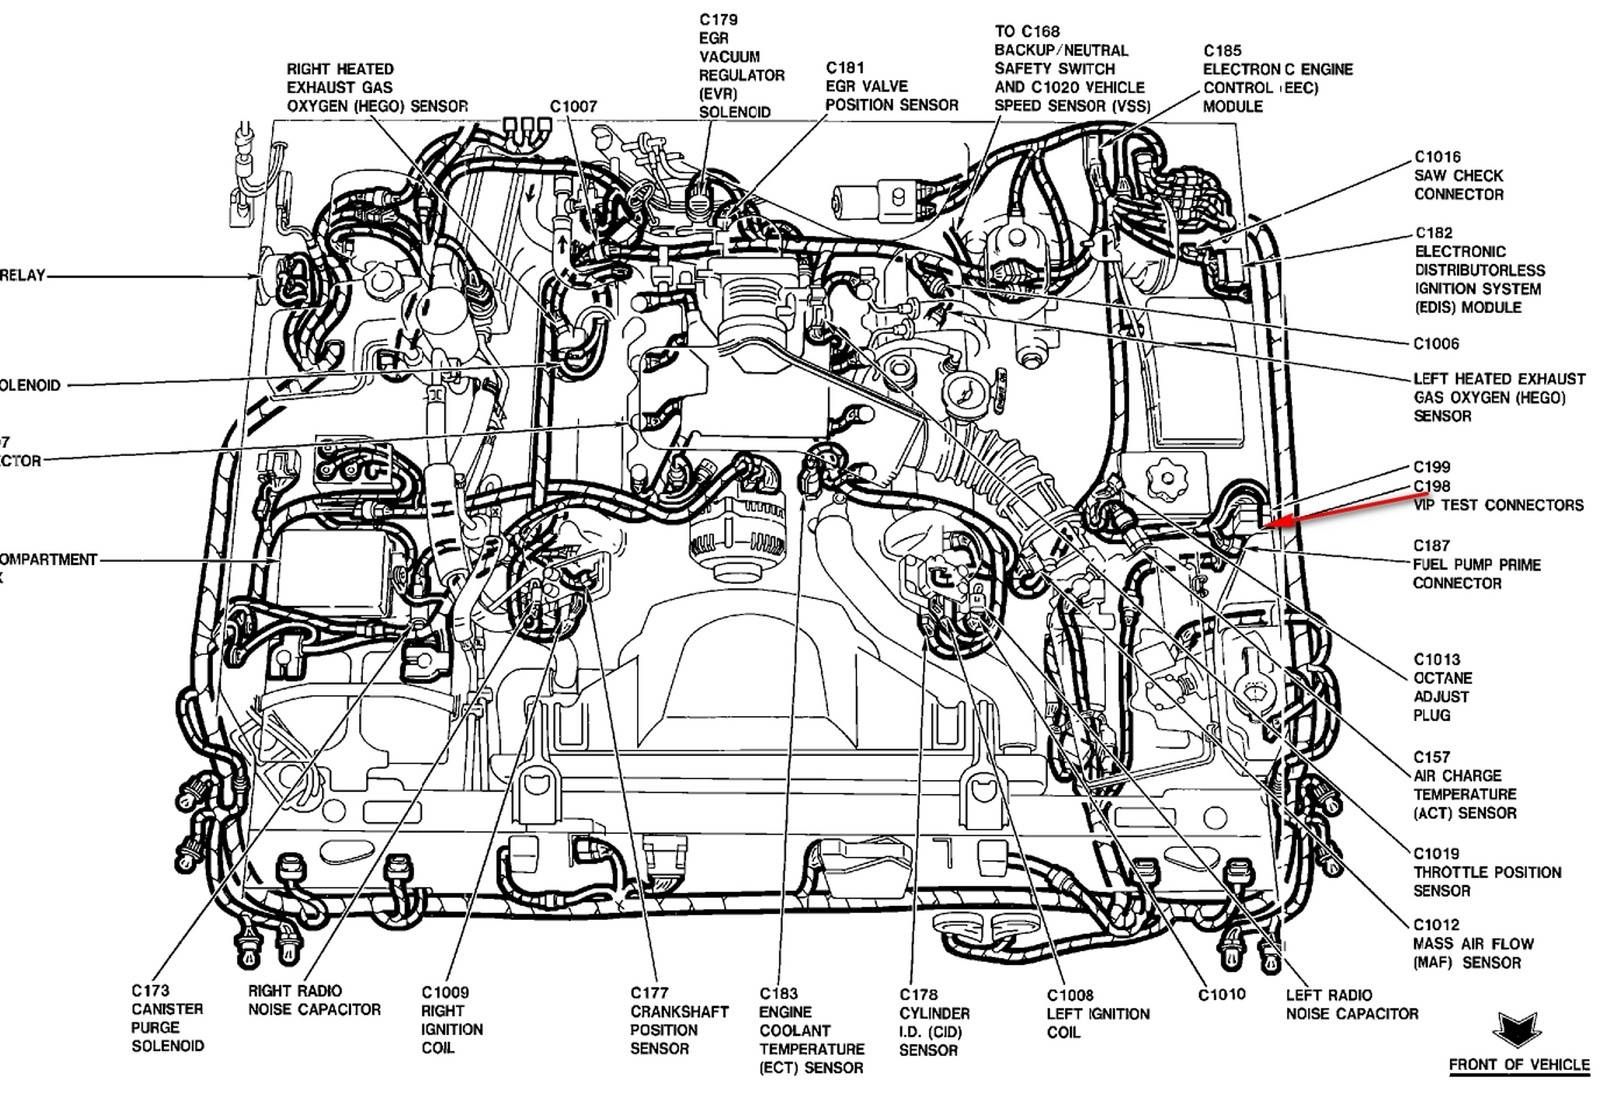 97 Ford Taurus Engine Diagram additionally P 0900c15280087a8a further 6e10f 1988 Ford F350 Super Duty 7 3 Diesel Fuel Guage likewise Ford Freestar Egr Valve Location furthermore Radiator Hose Diagram For 2000 Ford F150. on vacuum line diagram 1998 lincoln continental